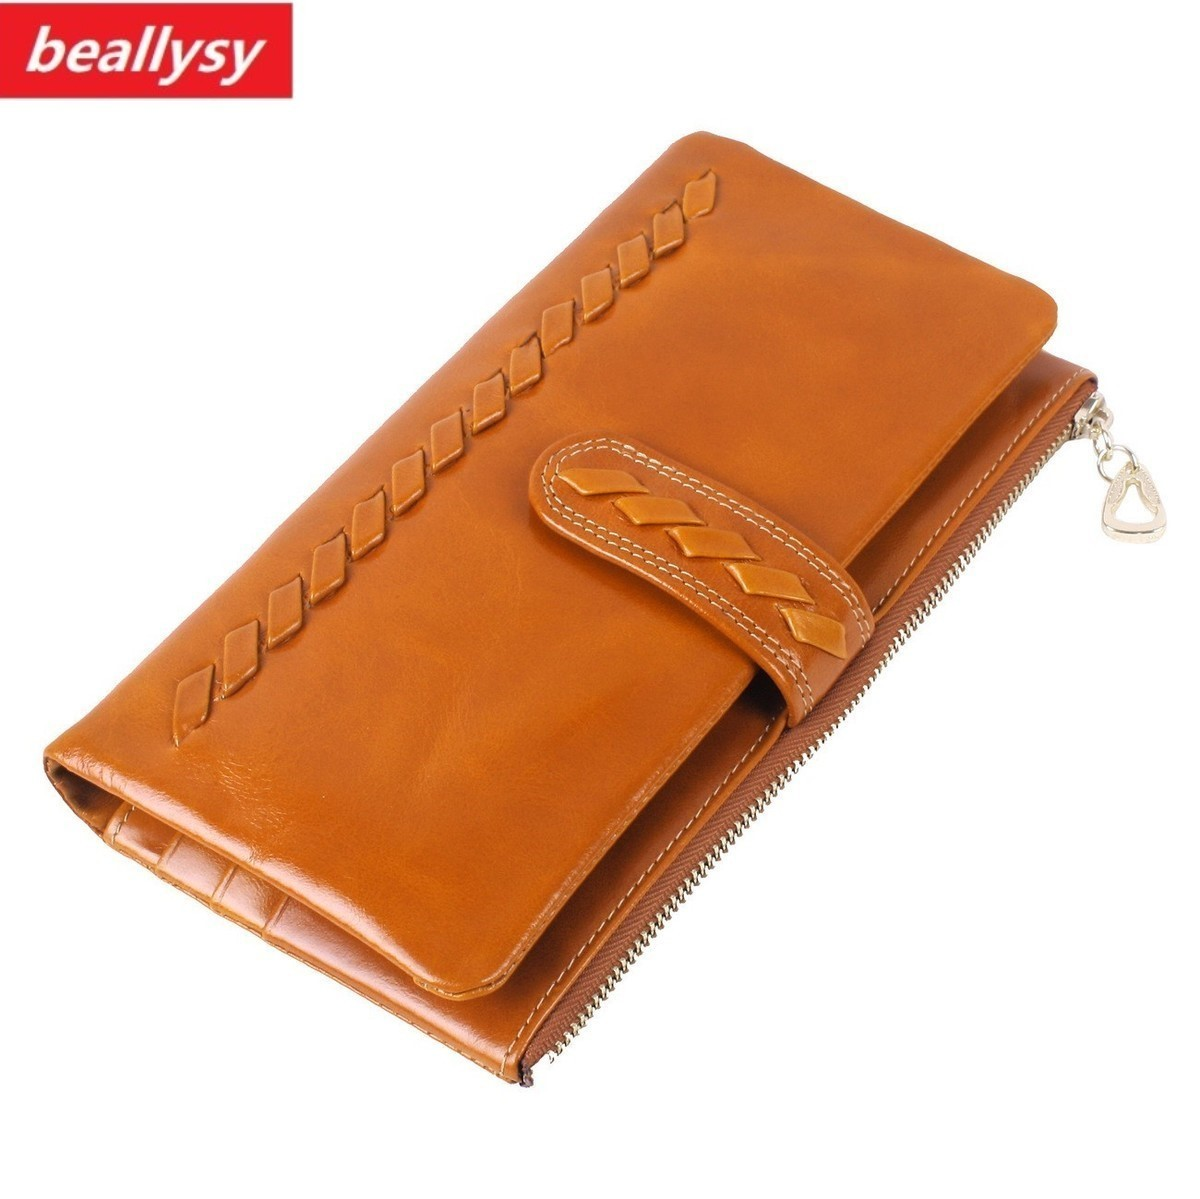 High Quality Women Long Wallets Knitting Standard Hasp Money Purse Fashion Style Card Holder Genuine Leather Lady Day Clutch Bag pacgoth fashion hasp short clutch wallets women money bag money purse 2 folds bag wallets